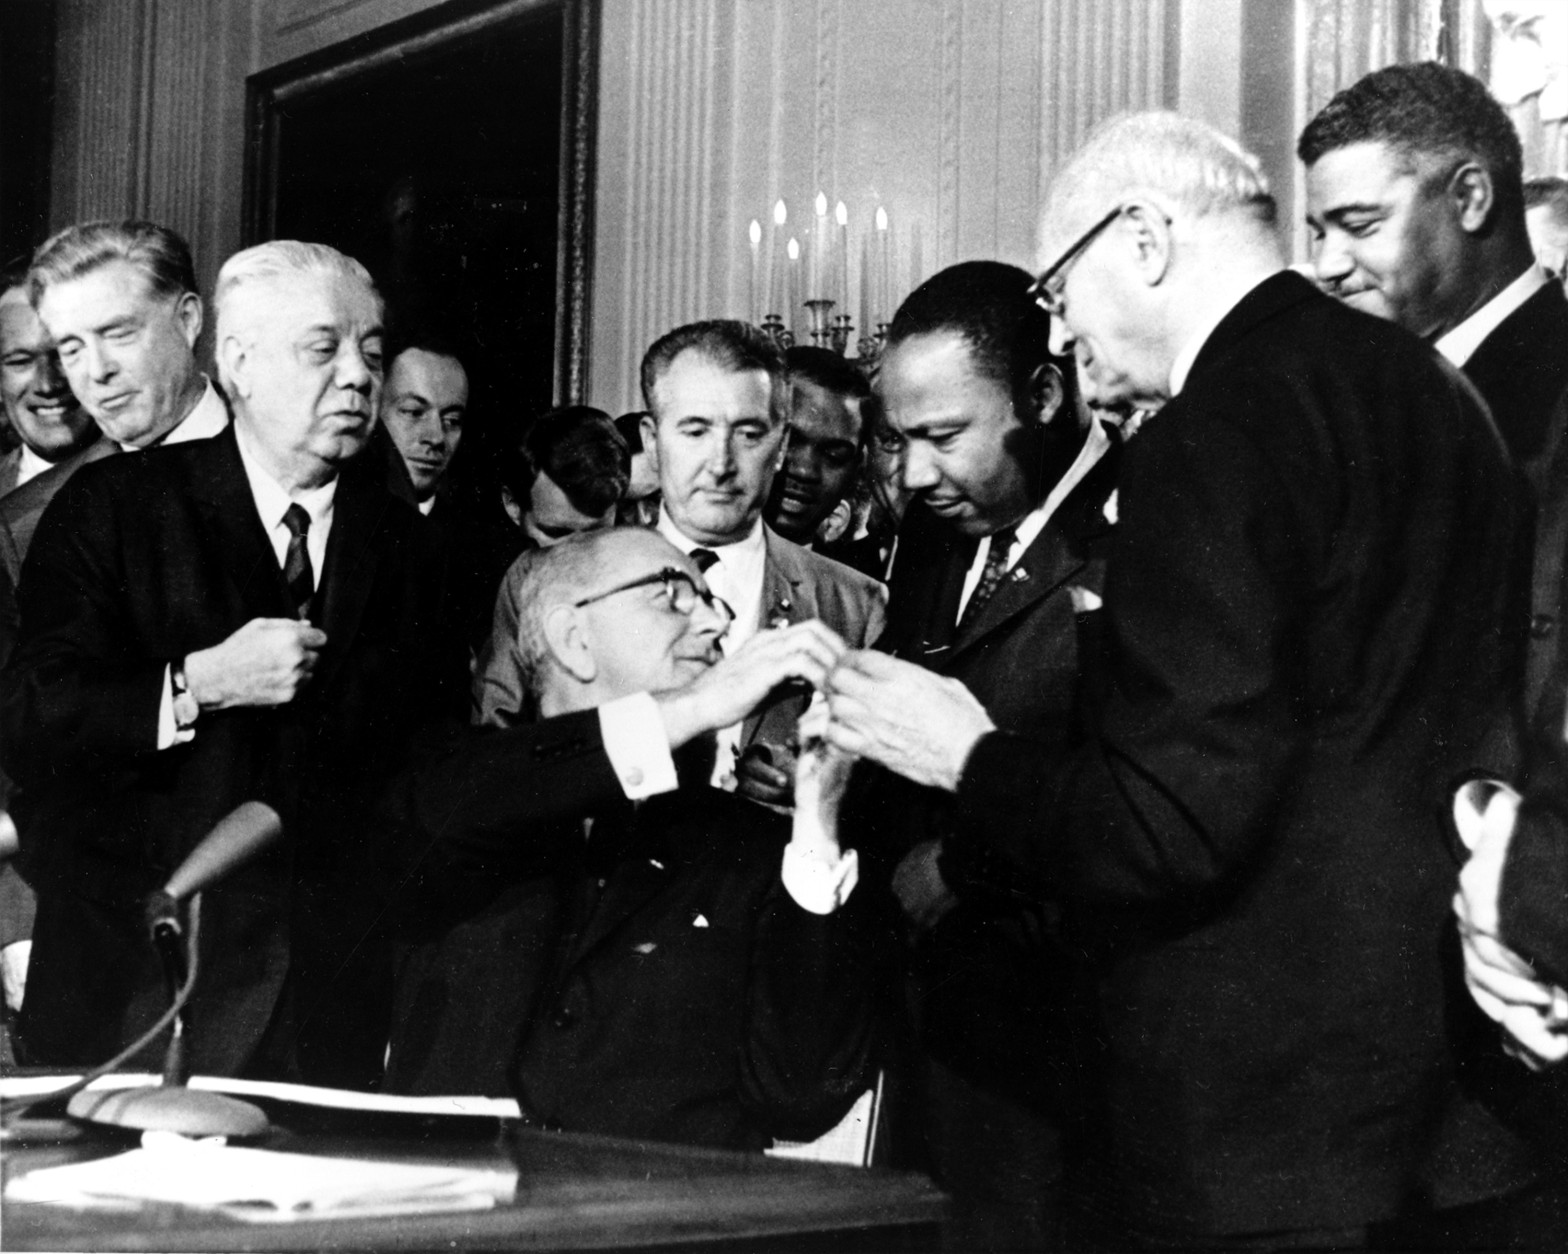 U.S. President Lyndon B. Johnson reaches to shake hands with Dr. Martin Luther King Jr. after presenting the civil rights leader with one of the 72 pens used to sign the Civil Rights Act of 1964 in Washington, D.C., on July 2, 1964.  Surrounding the president, from left, are, Rep. Roland Libonati, D-Ill., Rep. Peter Rodino, D-N.J., Rev. King, Emanuel Celler, D-N.Y., and behind Celler is Whitney Young, executive director of the National Urban League.  (AP Photo)